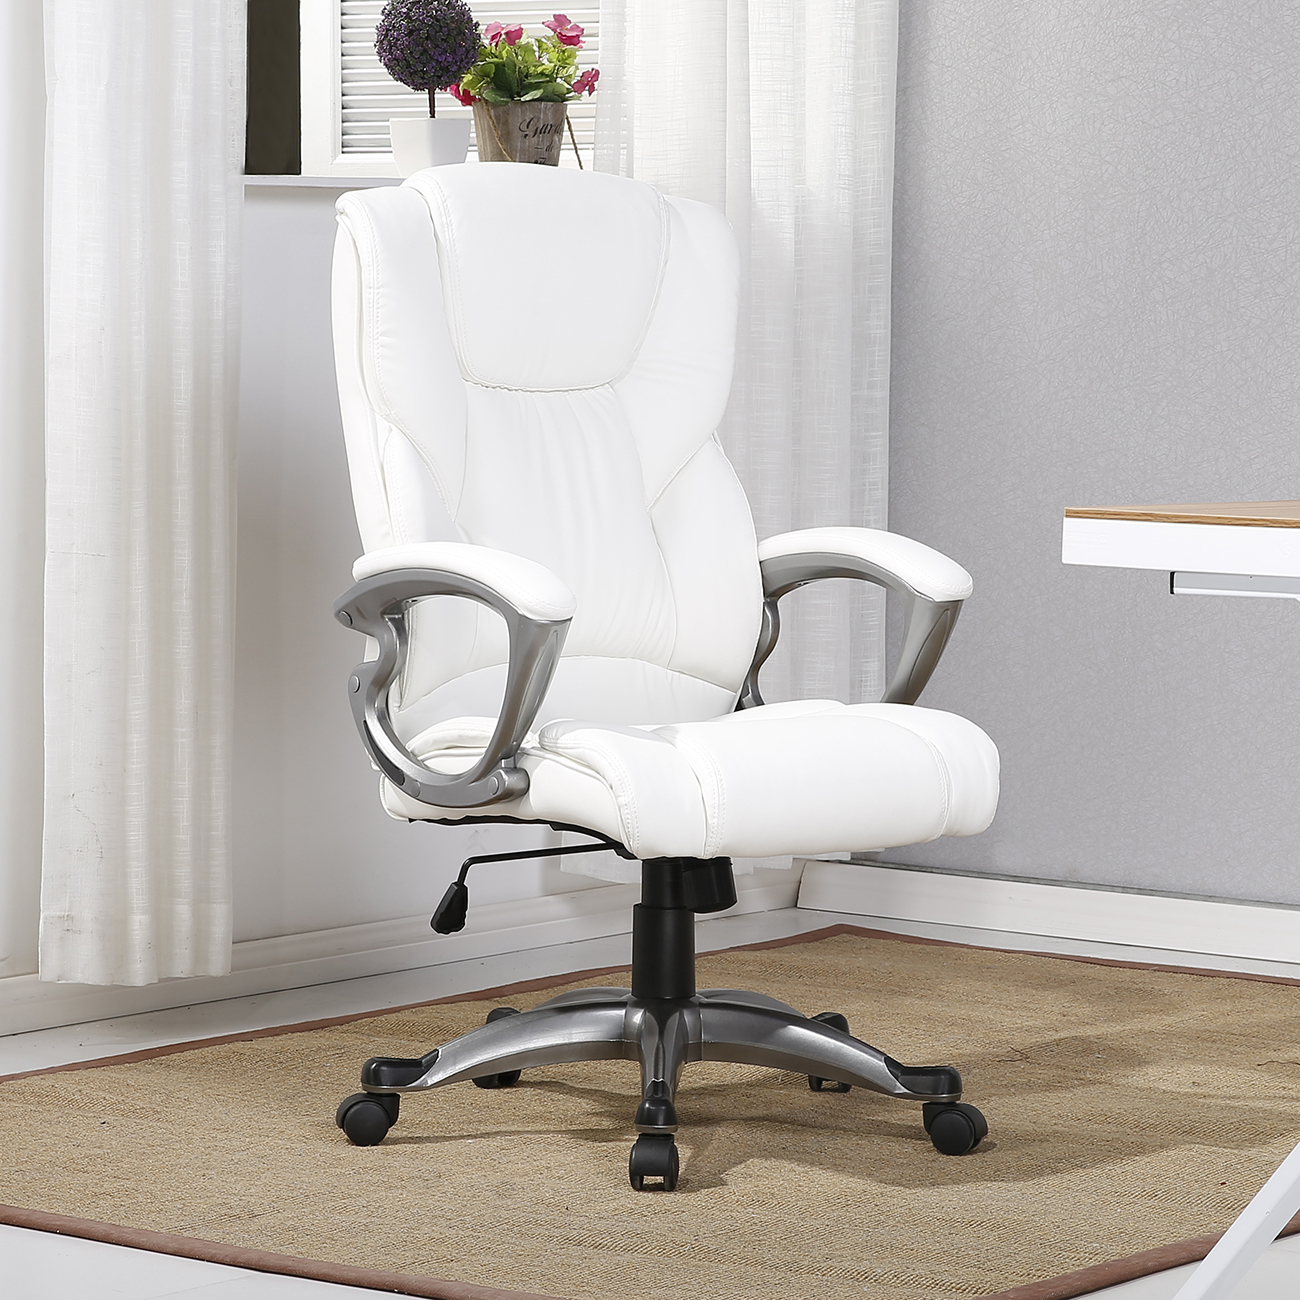 Belleze Executive Office Chair Padded Leather Swivel Task Computer Adjustable Height, White